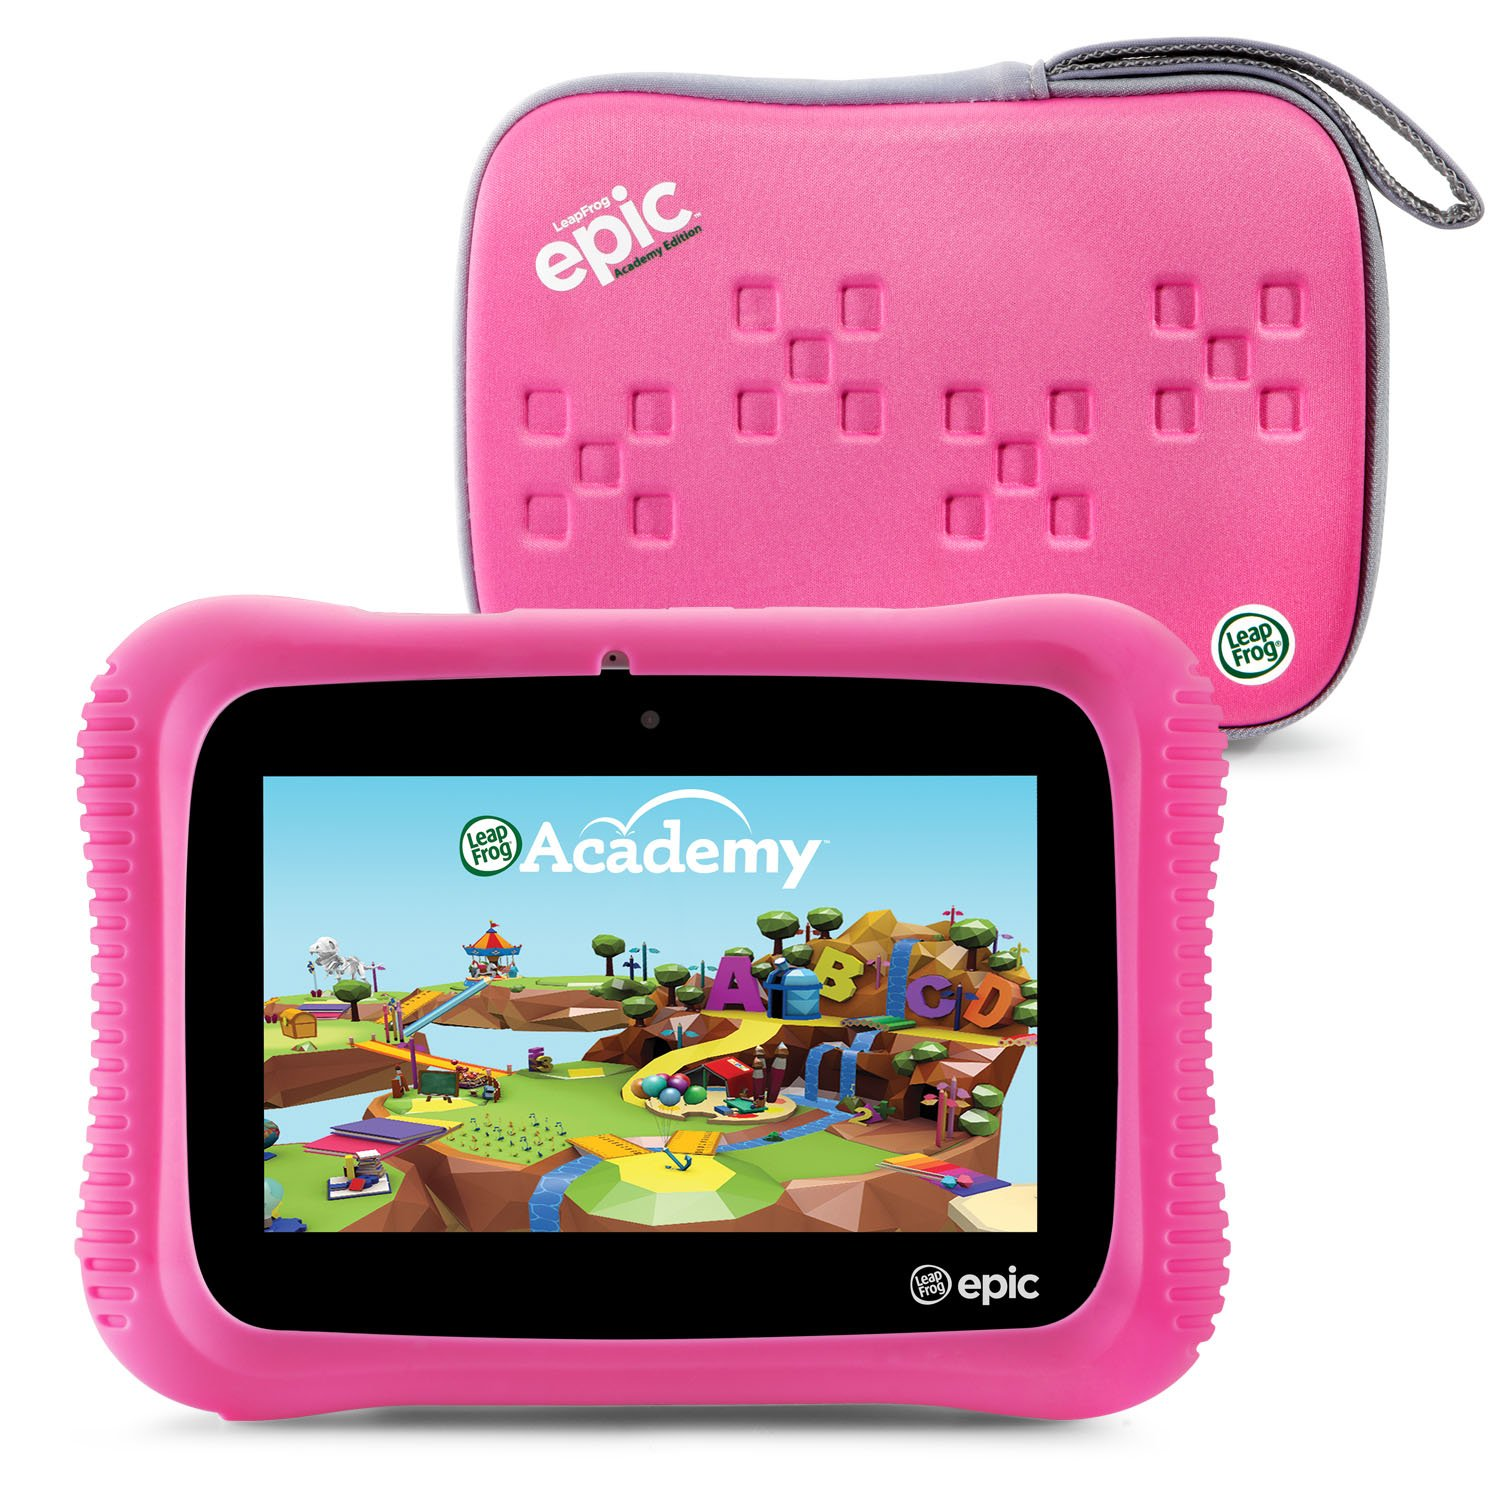 LeapFrog Epic Academy Edition 7'' Android 2.0 Based Kids Tablet 16GB with Carrying Case, Pink